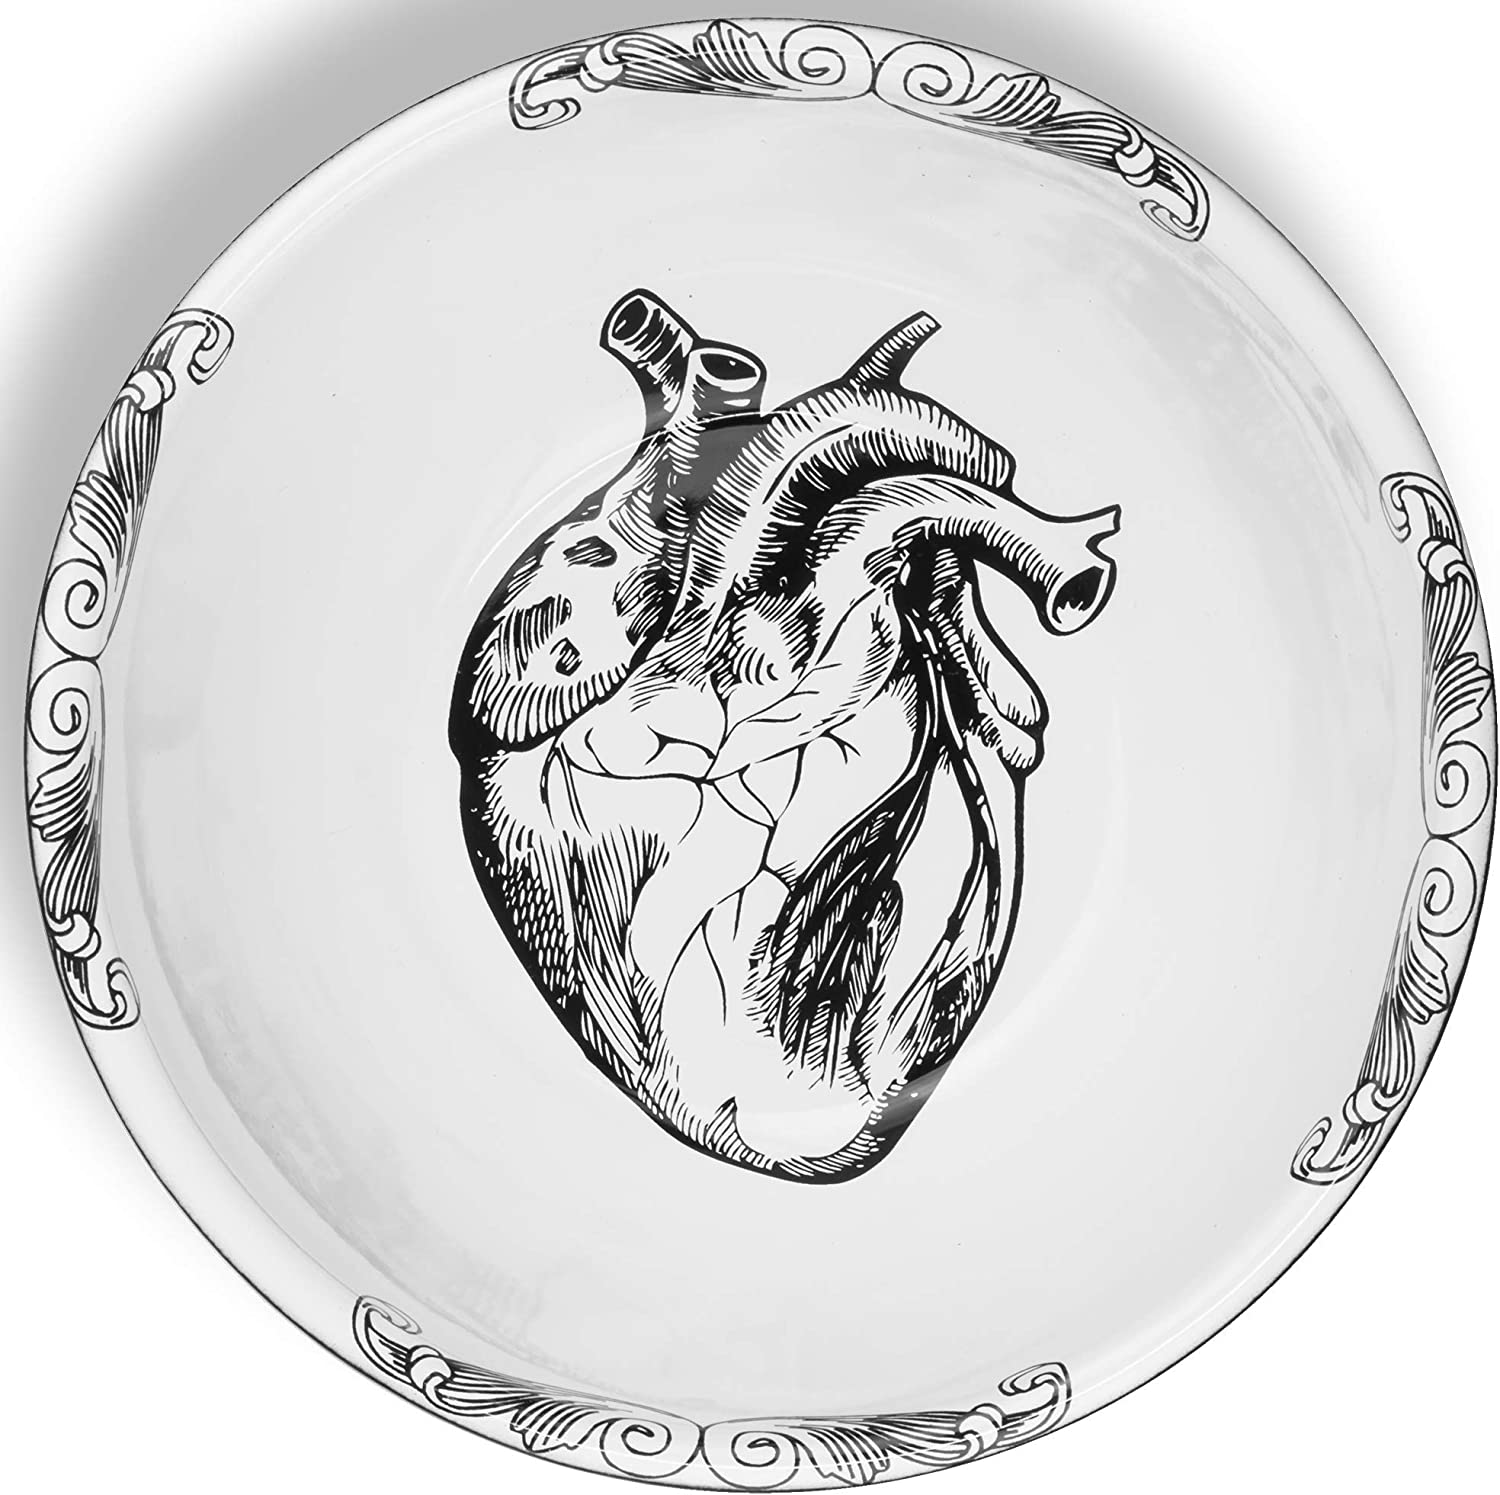 Enamel Peltre Heart Sales of SALE items from new works Design Bowl 20 Charlotte Mall cm 2.7 x 7 to i in 7.8